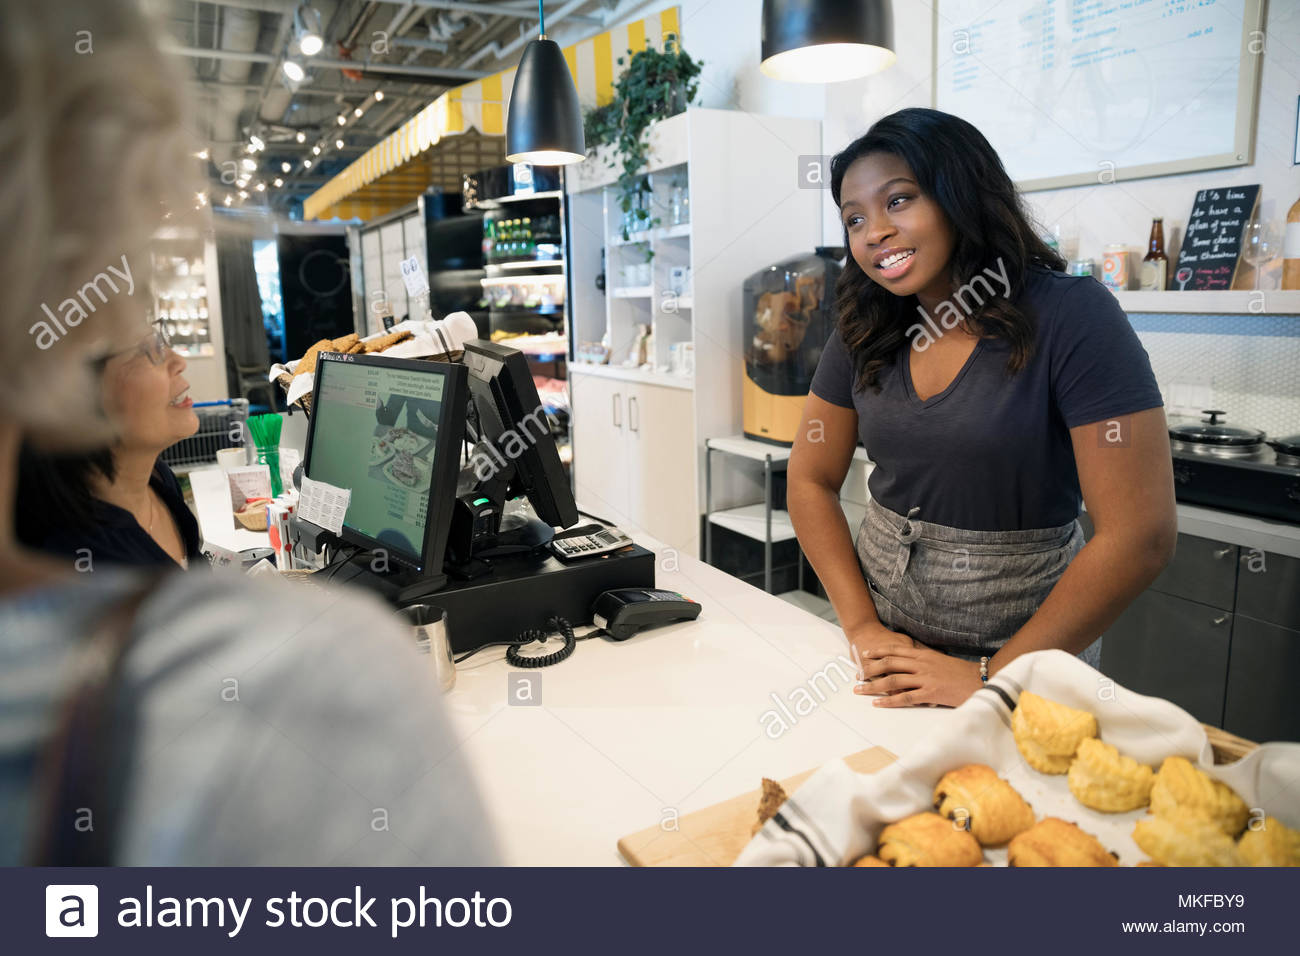 Smiling female small business owner working behind bakery counter - Stock Image